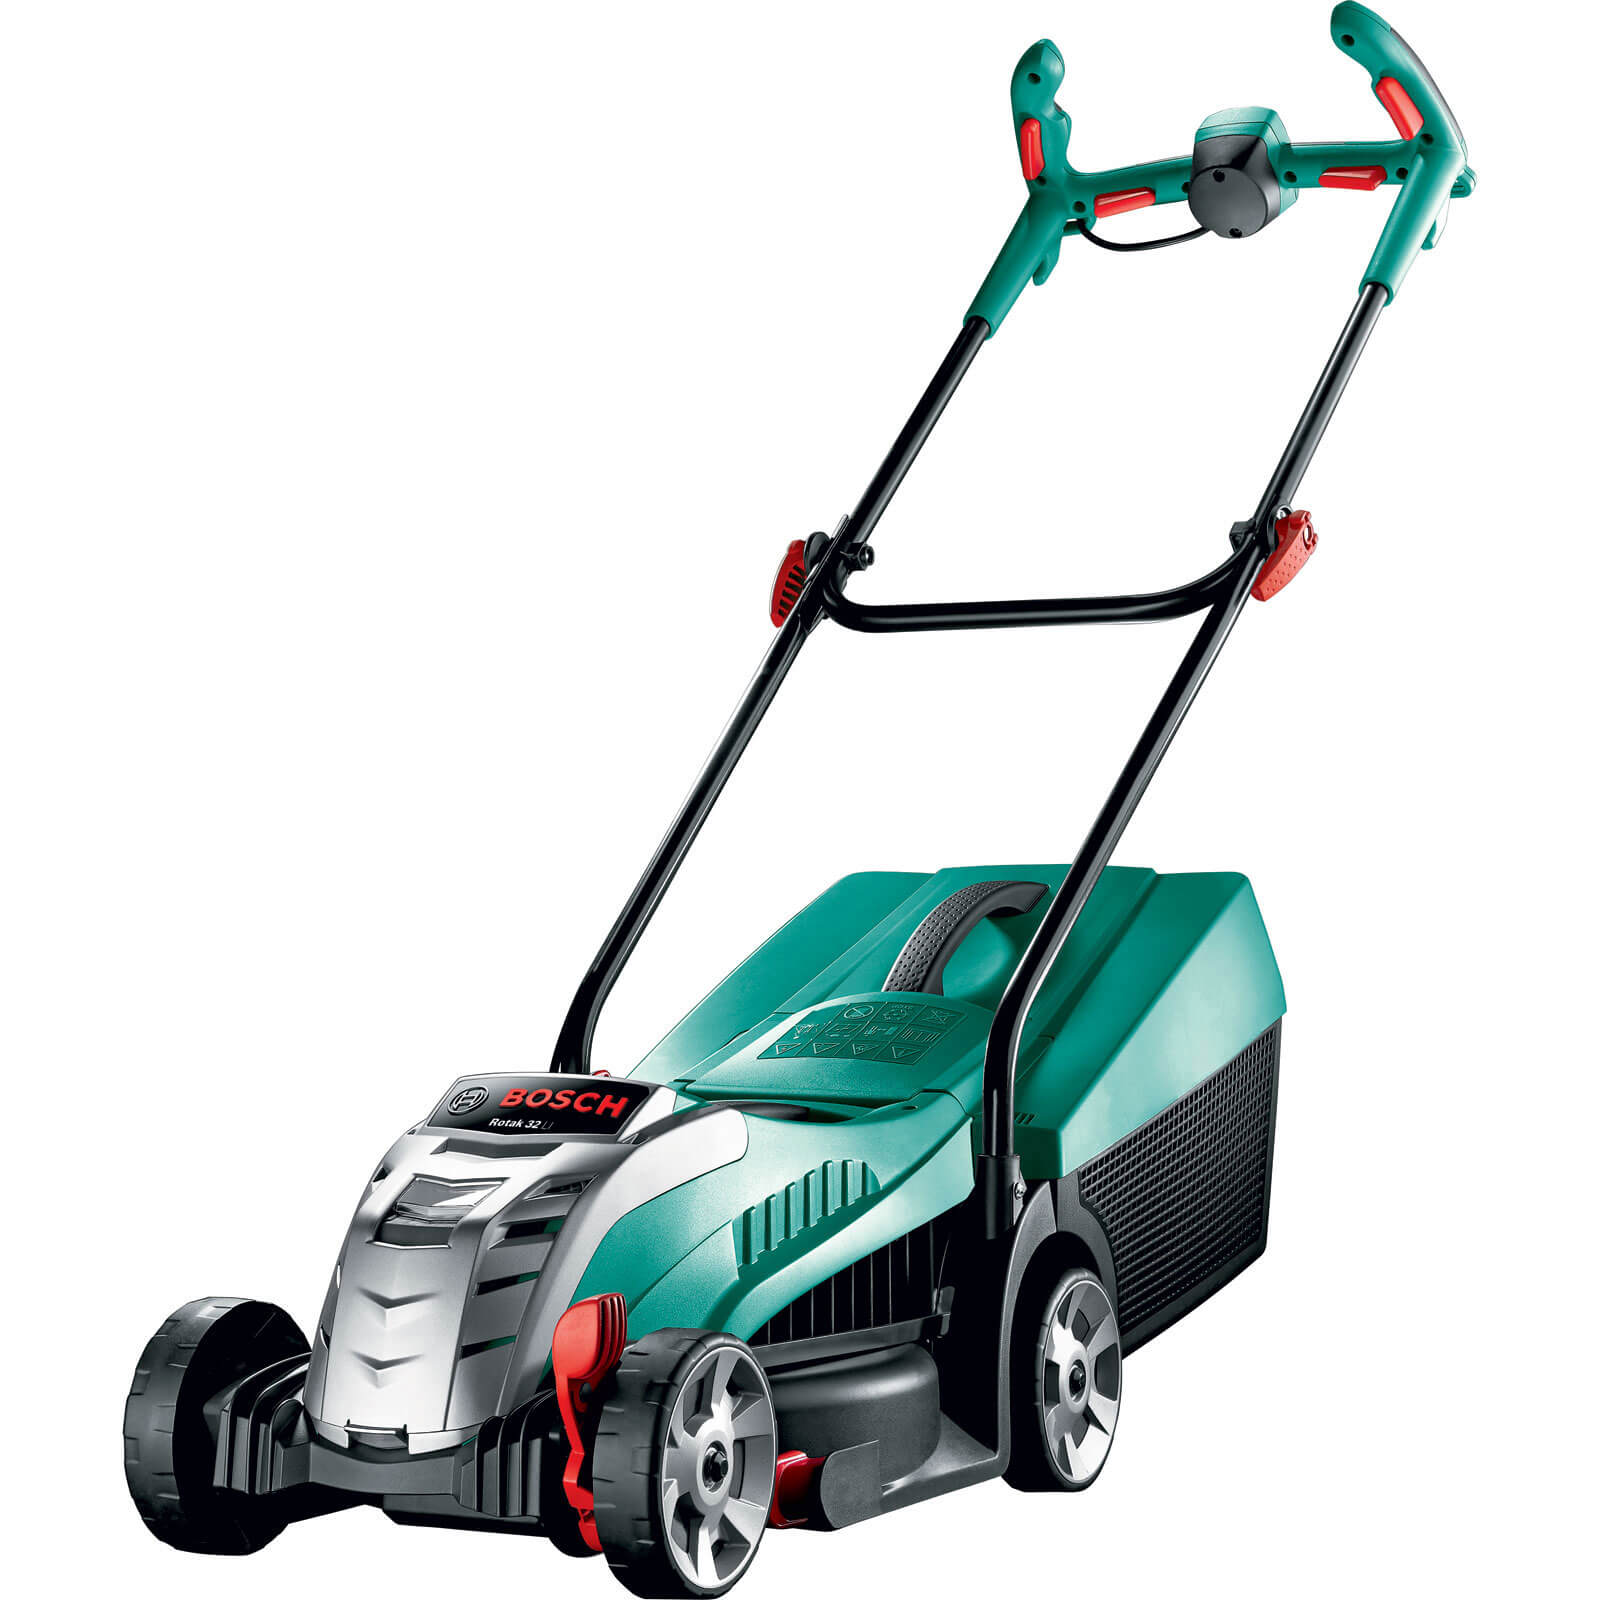 Image of Bosch ROTAK 32 LI ERGOFLEX 36v Cordless Rotary Lawnmower 320mm 1 x 2ah Li-ion Charger